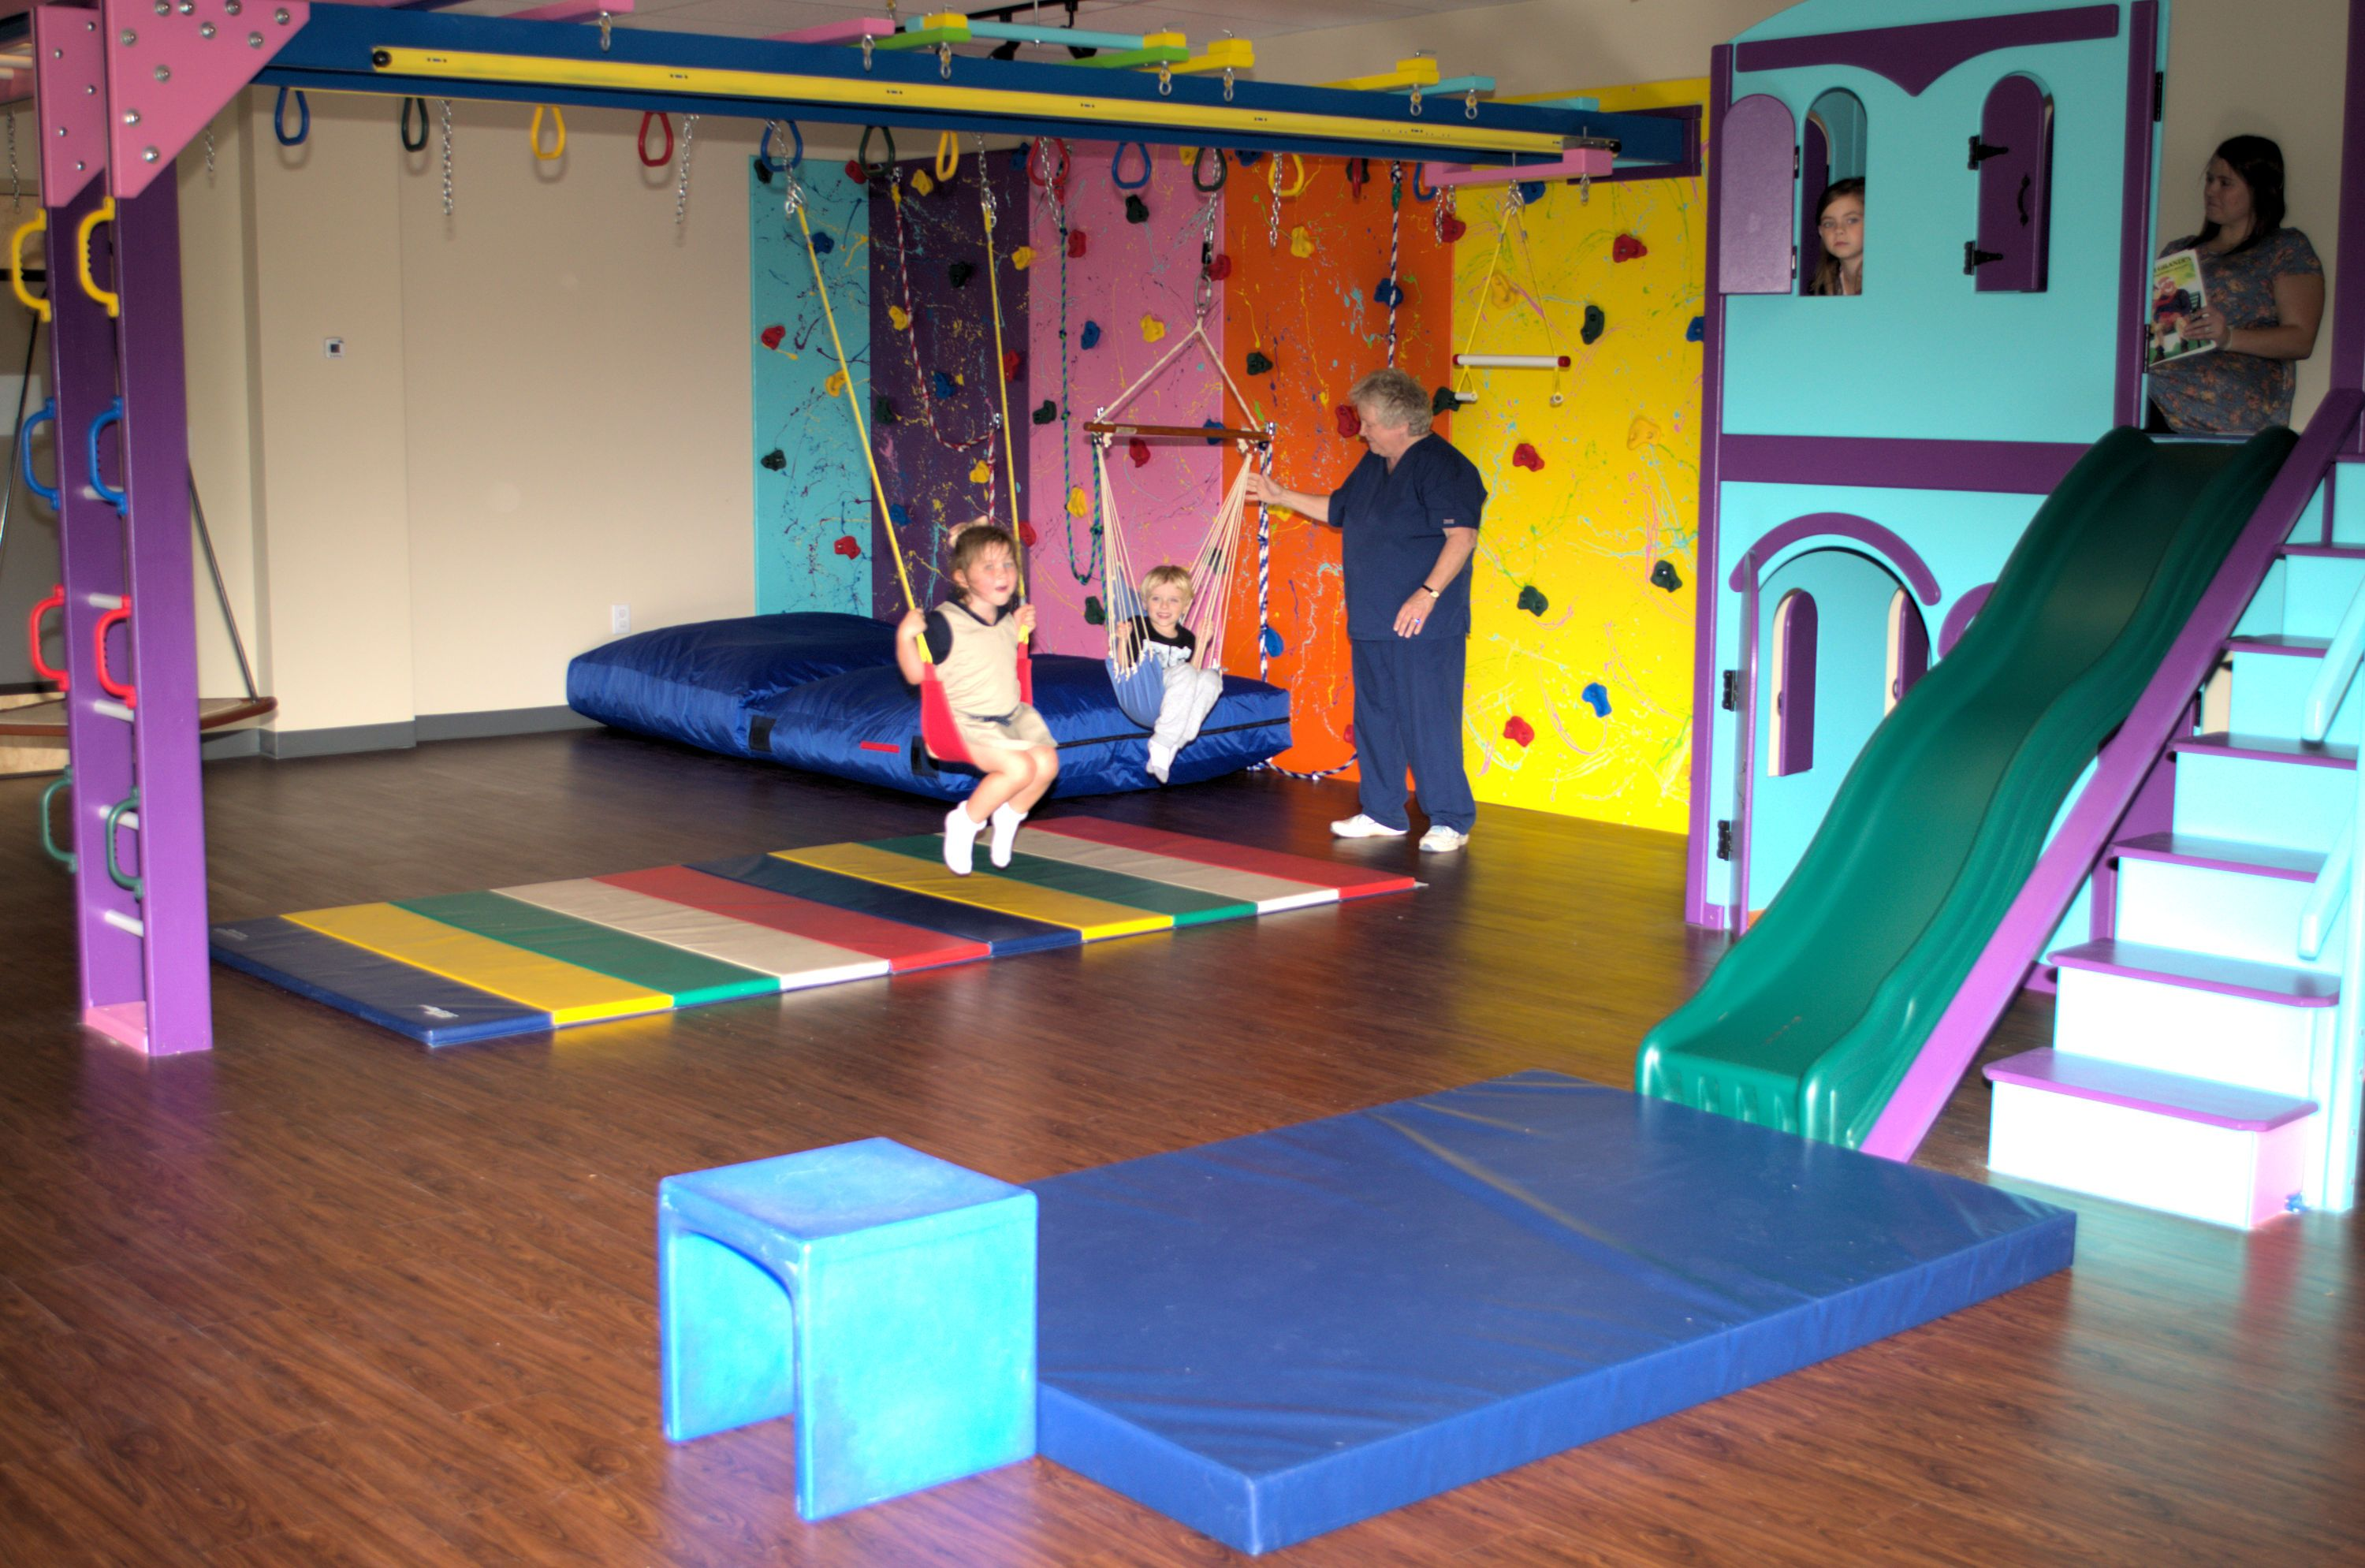 Stefanie Willard With Helping Hands Pediatric Therapy In Buford Georgia Has Taken The Next Step In Providing Her Children Low Ceiling Basement Gym At Home Gym